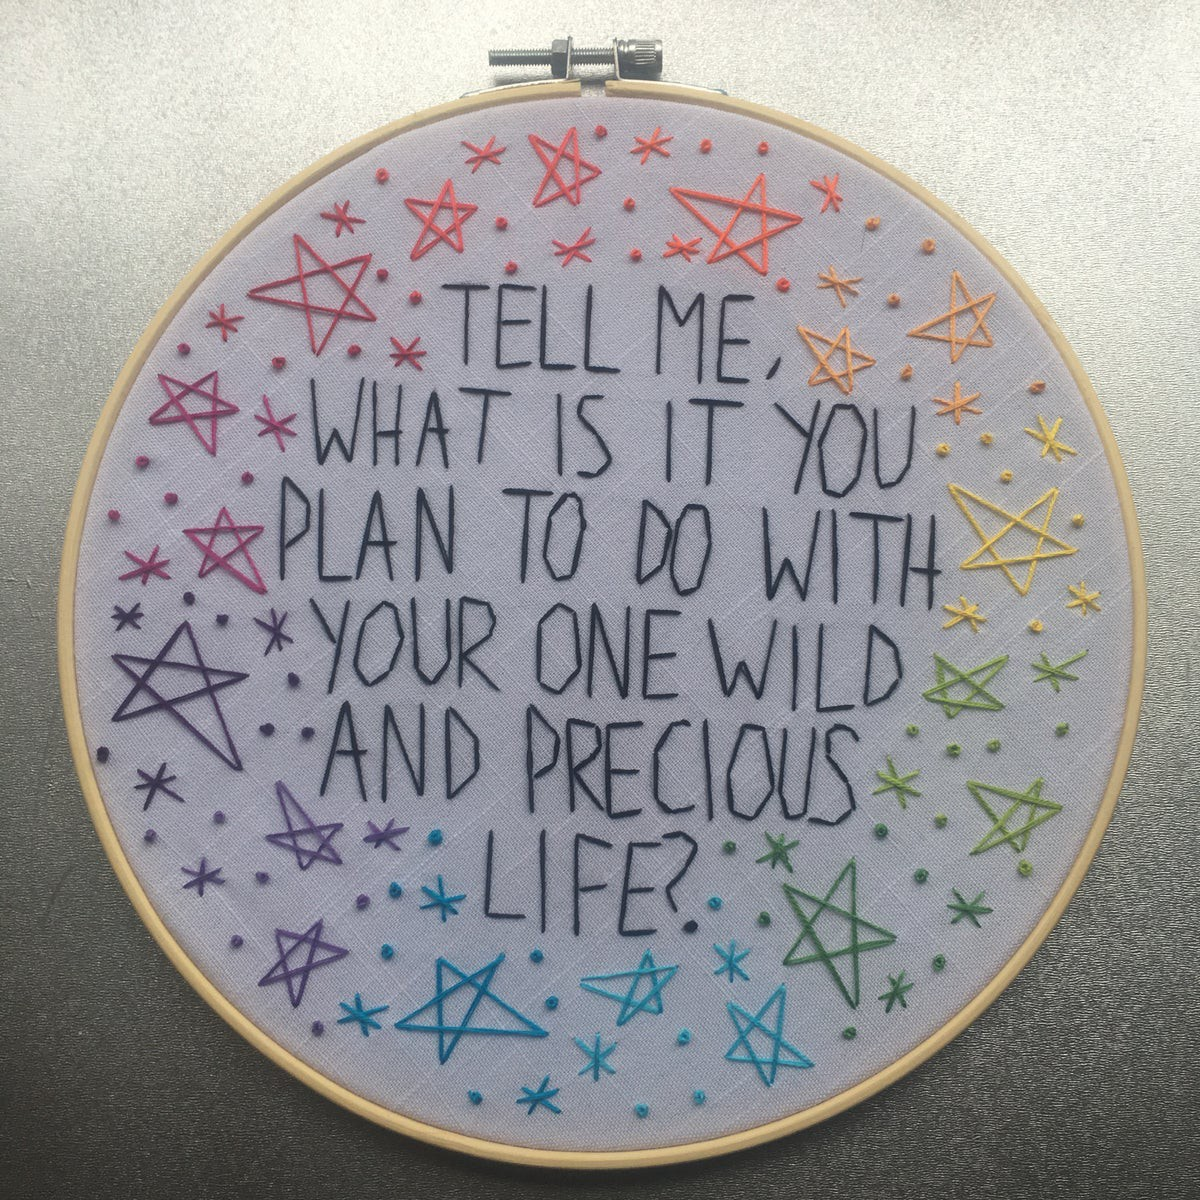 """Embroidery by Shana Hampton reads """"Tell me what is it you plan to do with your one wild and precious life?"""""""